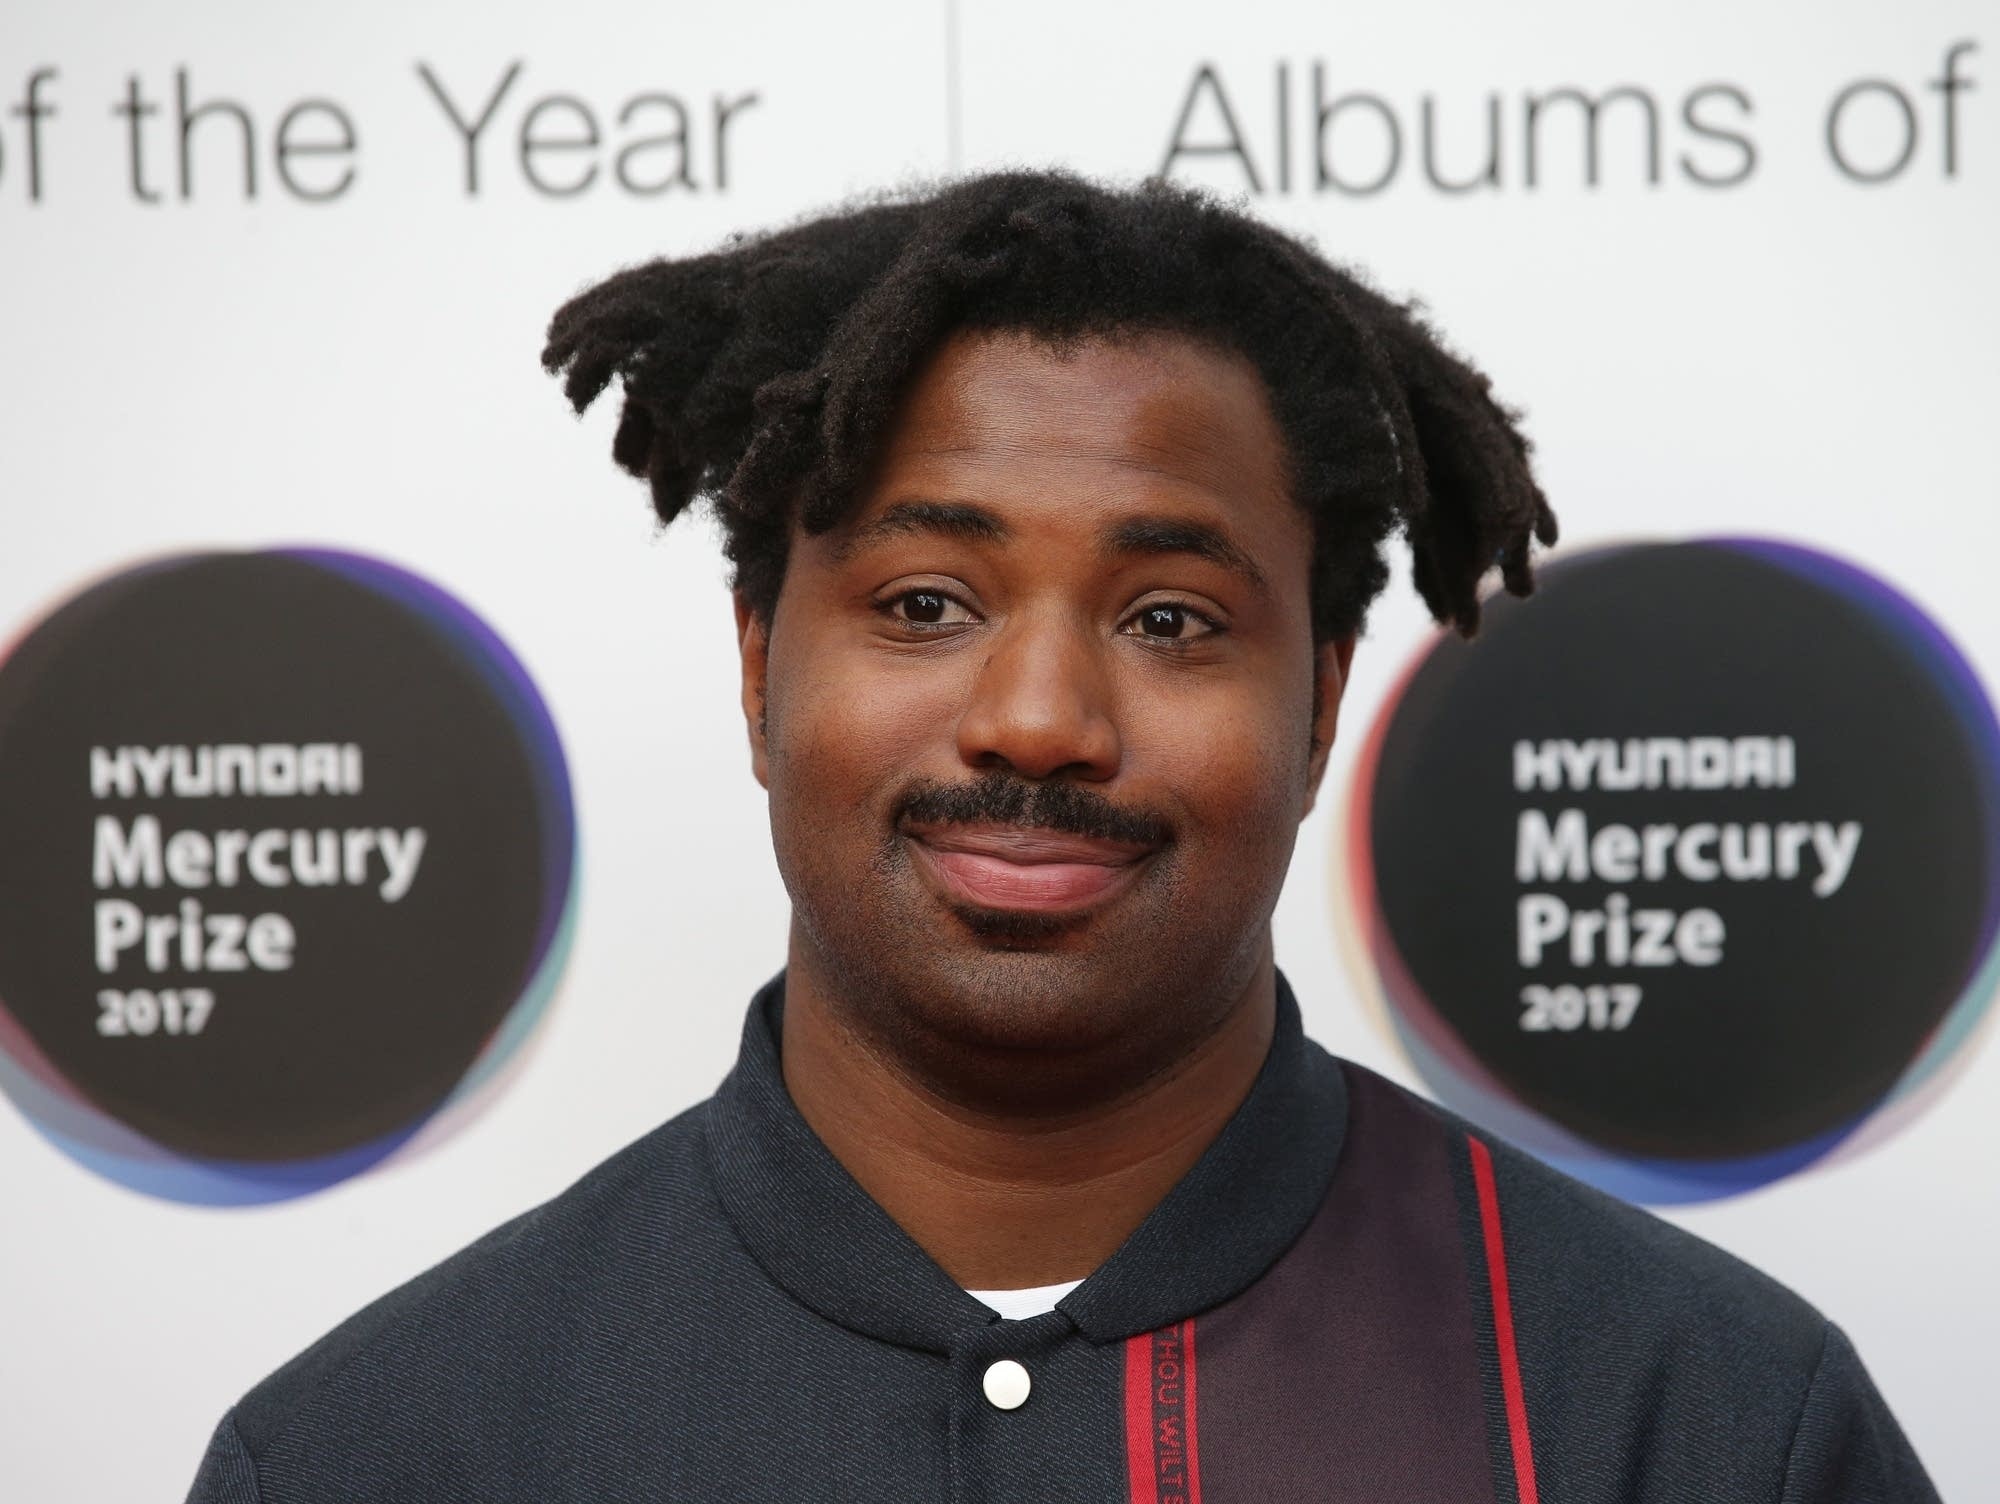 Sampha arrives at the 2017 Mercury Prize ceremony.